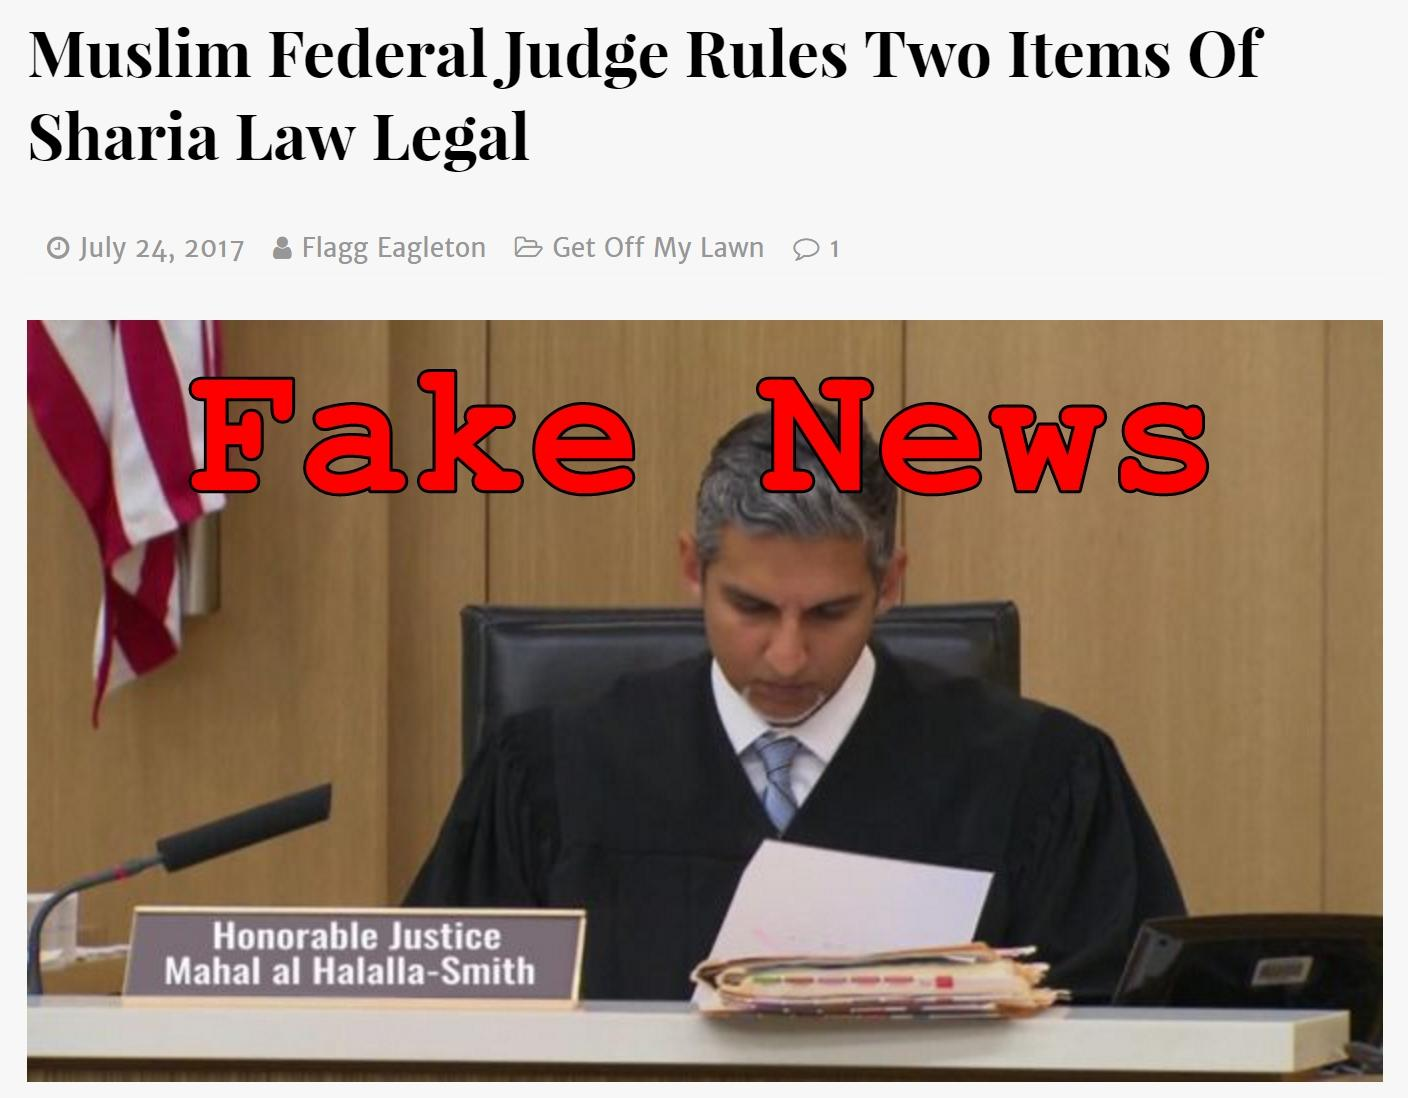 Fake News: Muslim Federal Judge Did NOT Rule Two Items Of Sharia Law Legal (And Was Not Found Dead)